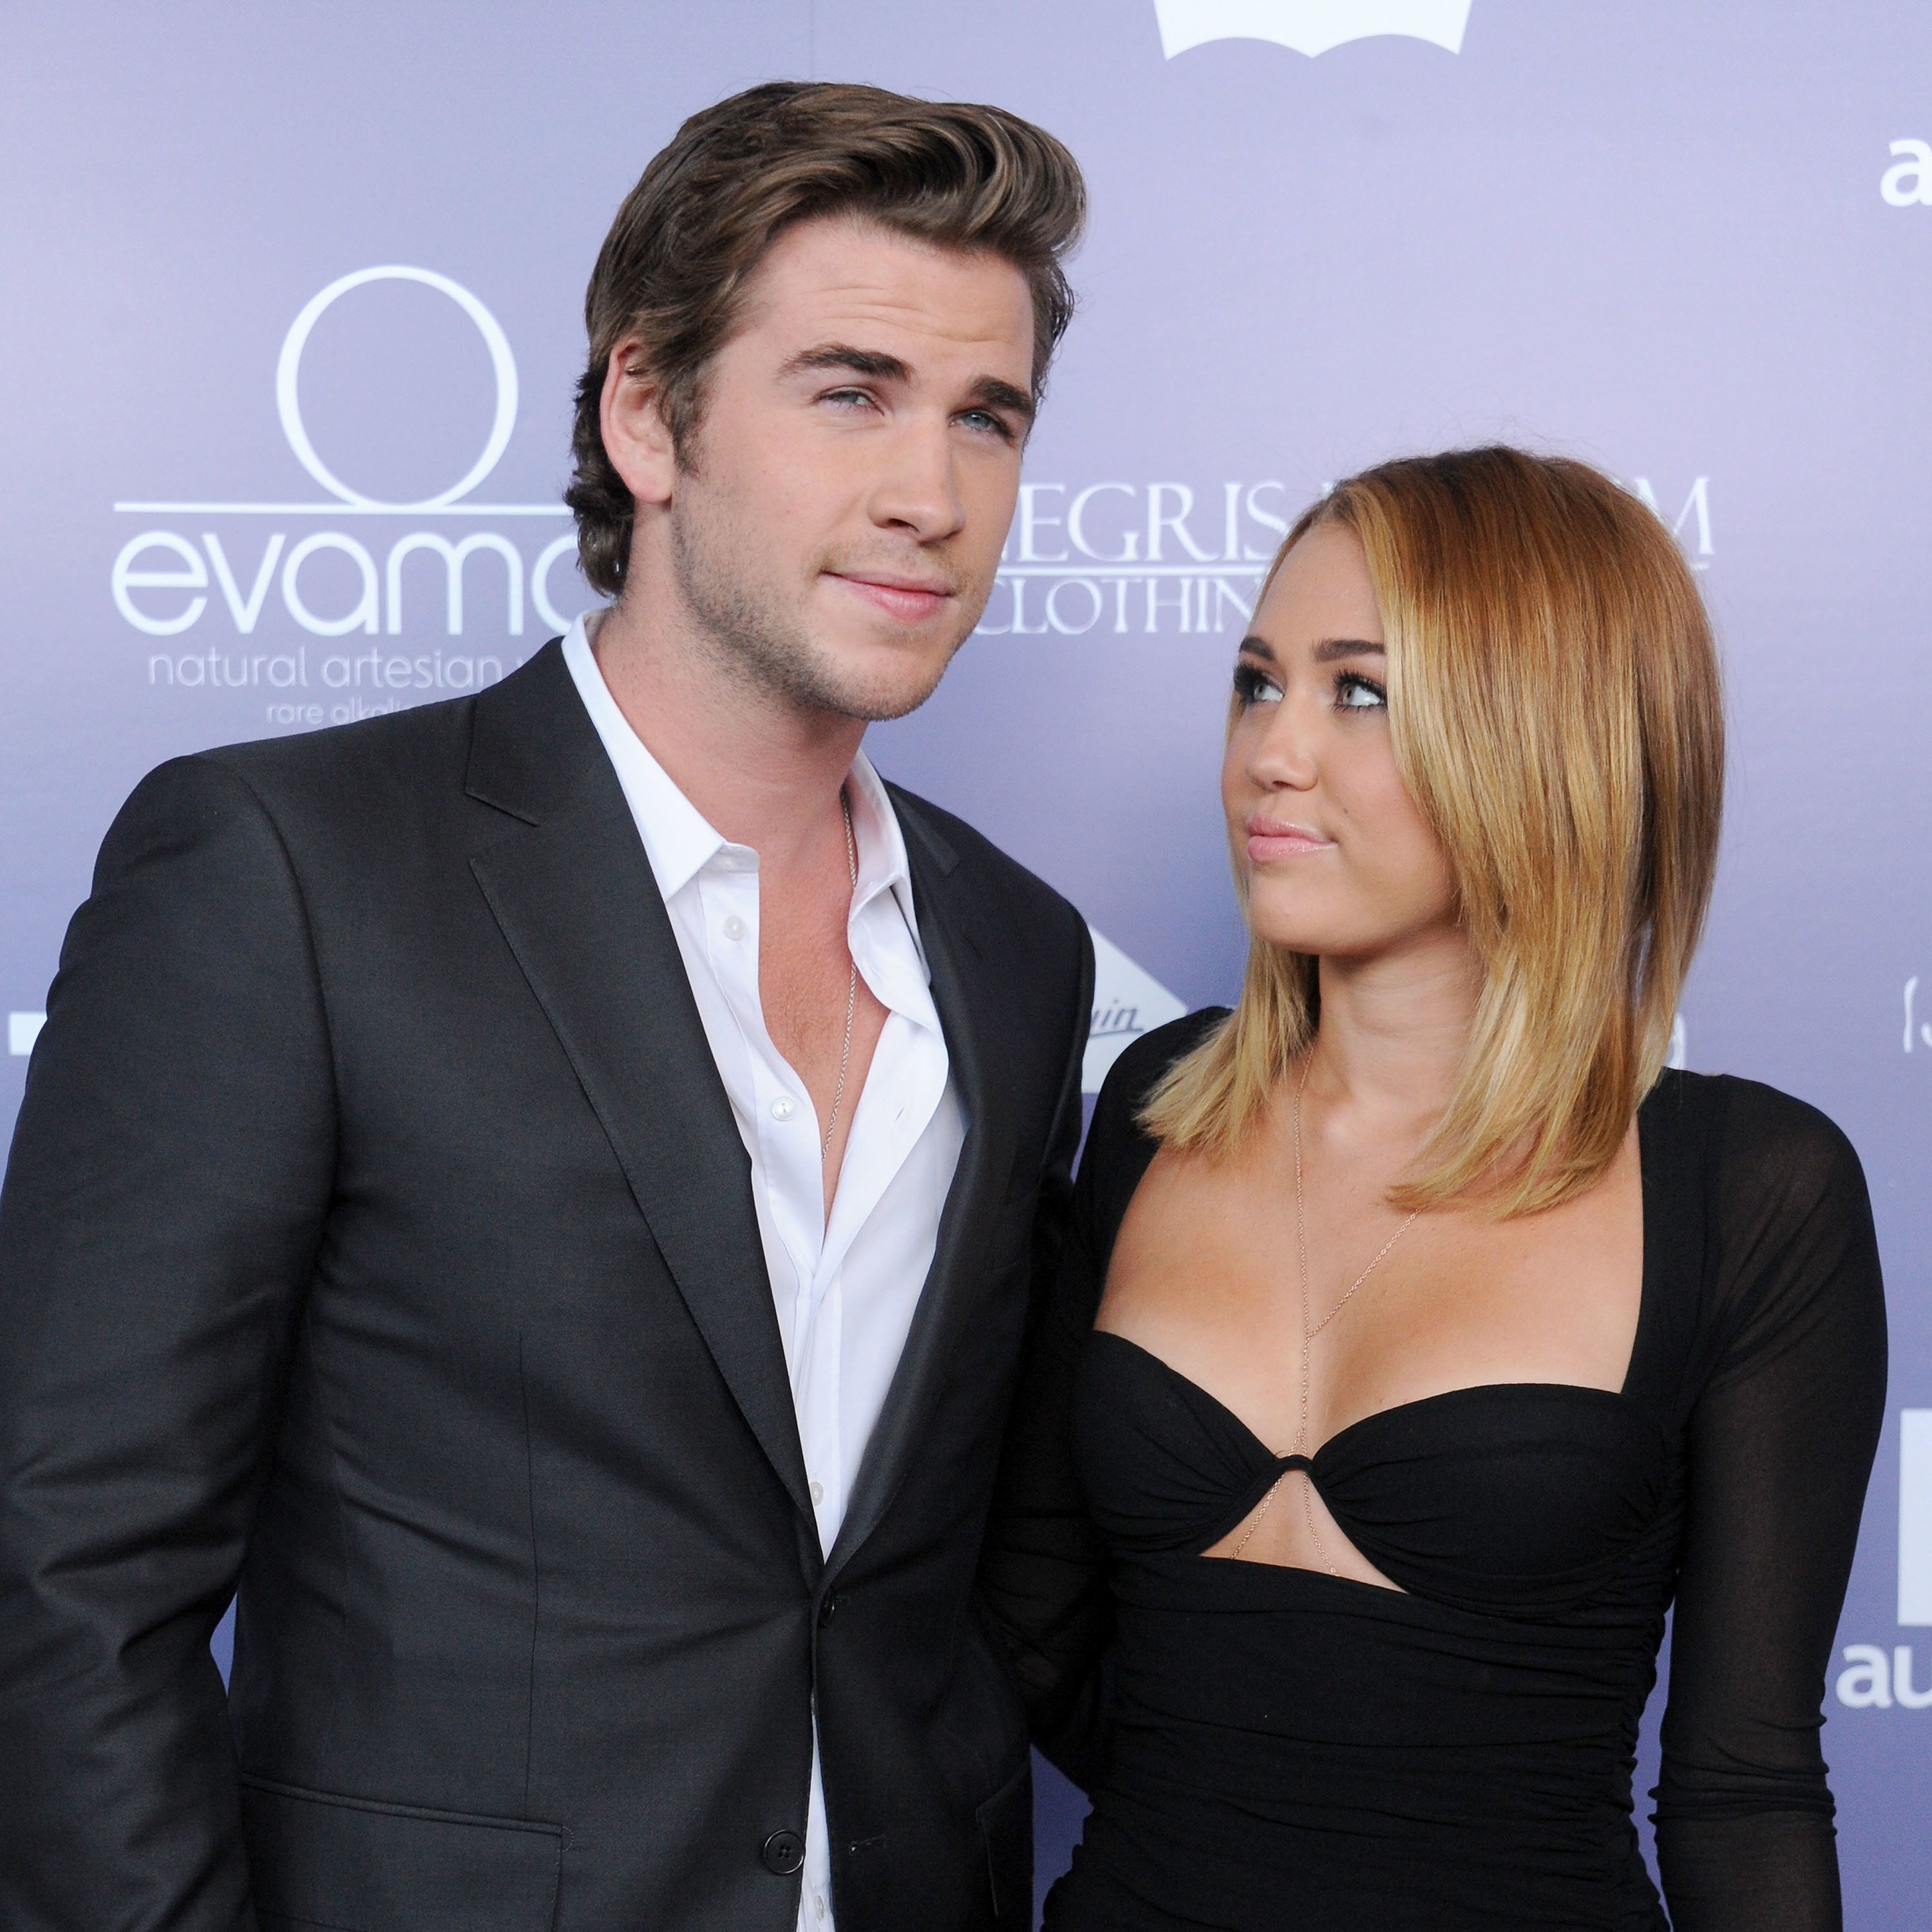 Liam Hemsworth and Miley Cyrus at the Australians In Film Breakthrough Awards, shortly after they announced their engage